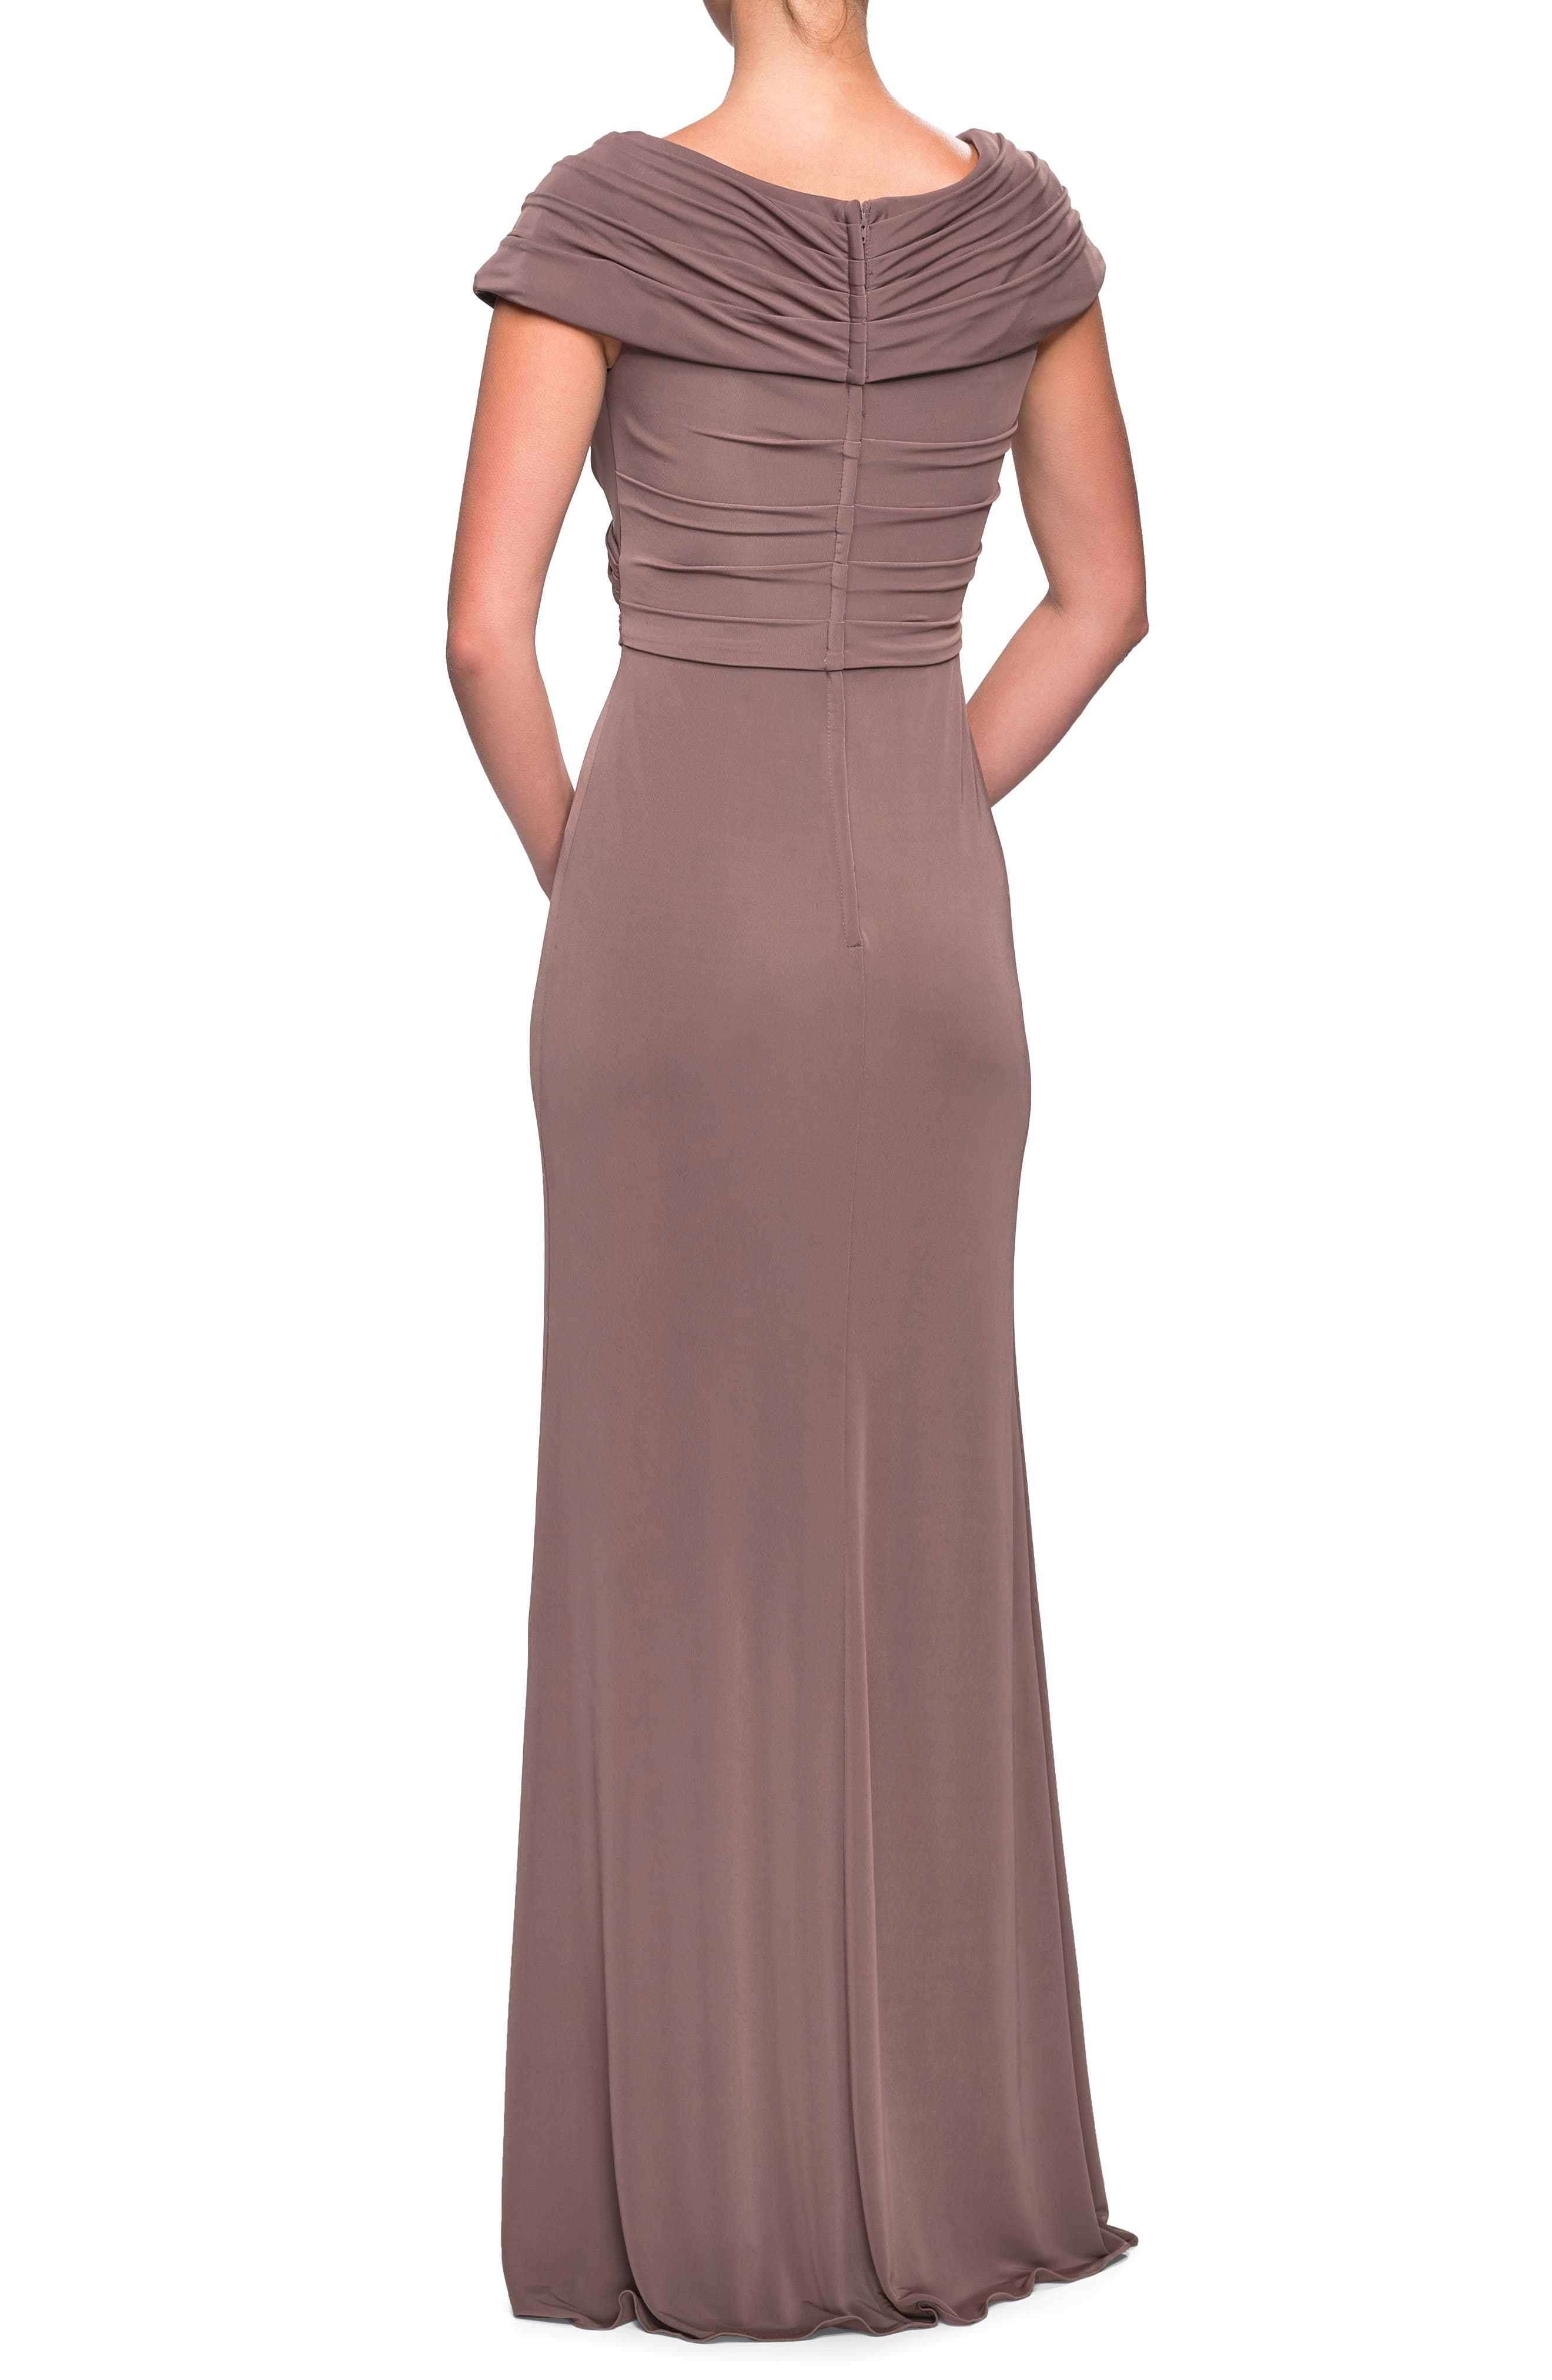 LA FEMME,                             Ruched Jersey Gown,                             Alternate thumbnail 2, color,                             COCOA